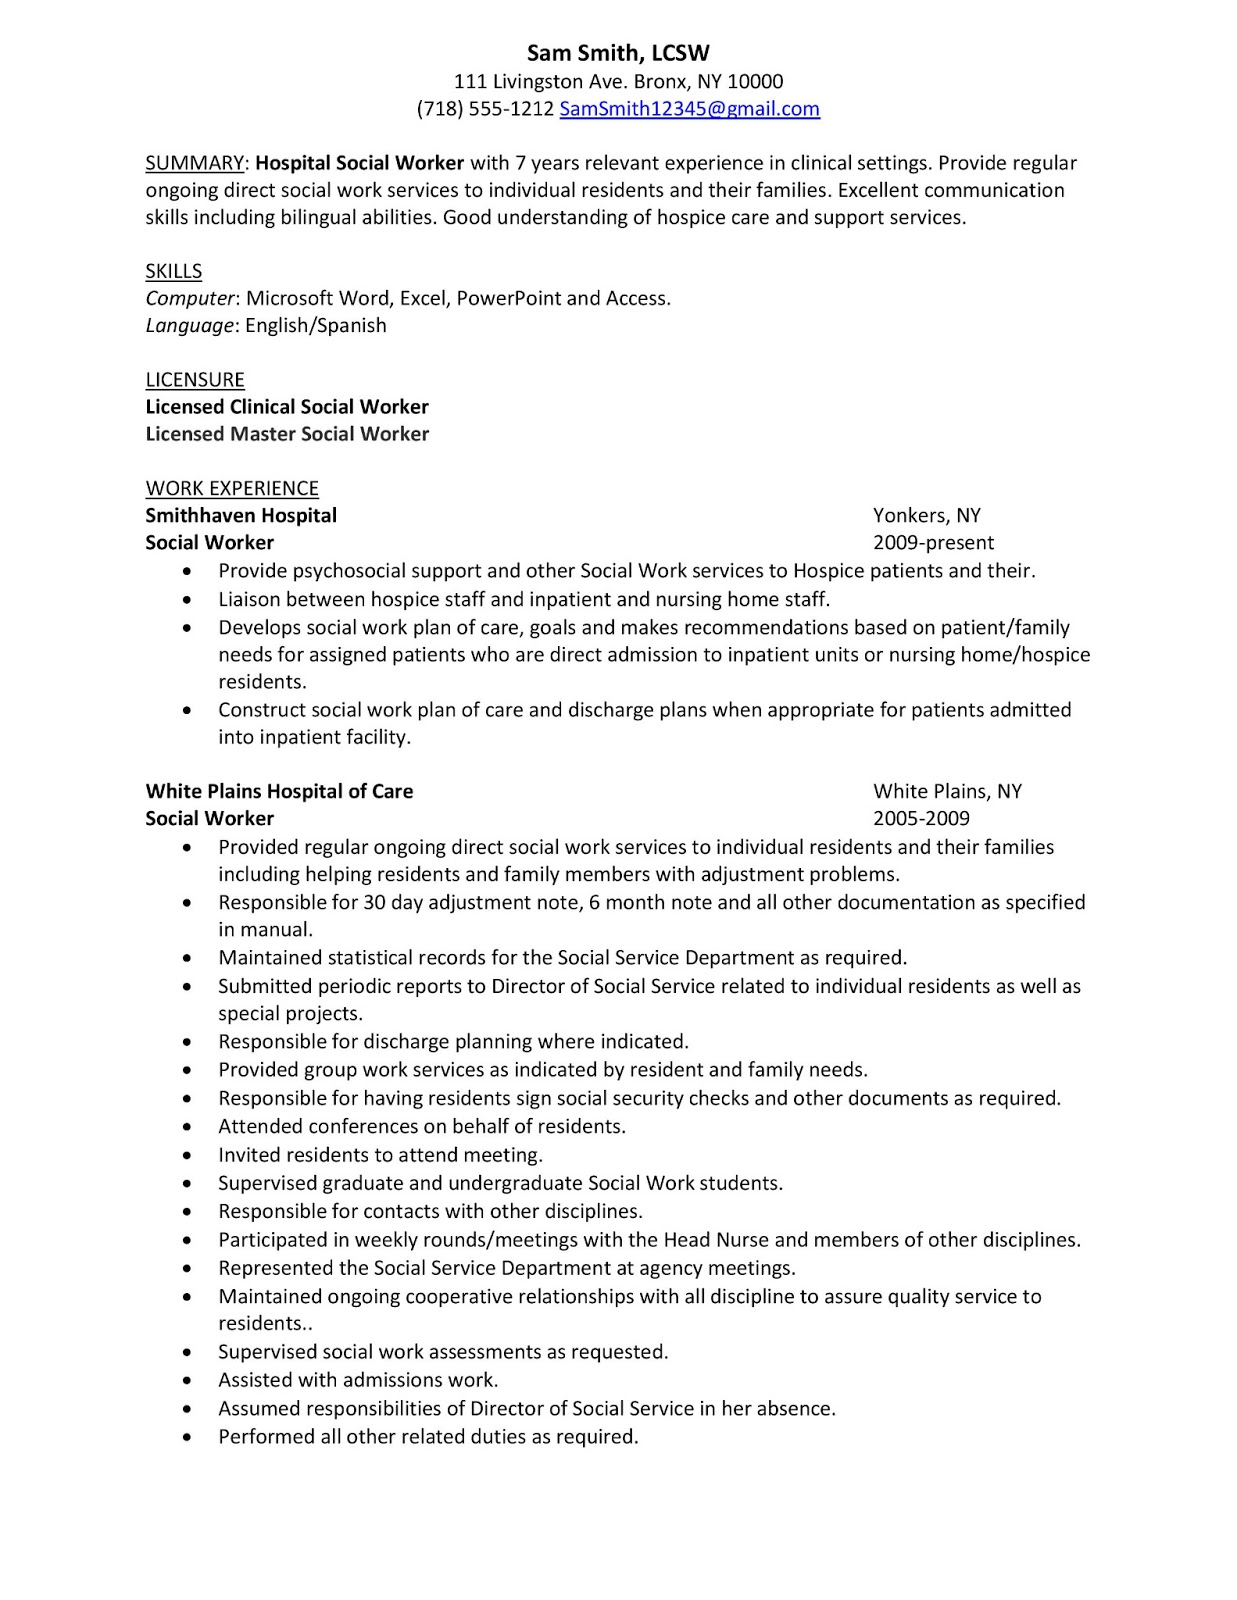 Lovely Sample Resume: Hospital Social Worker And Medical Social Worker Resume